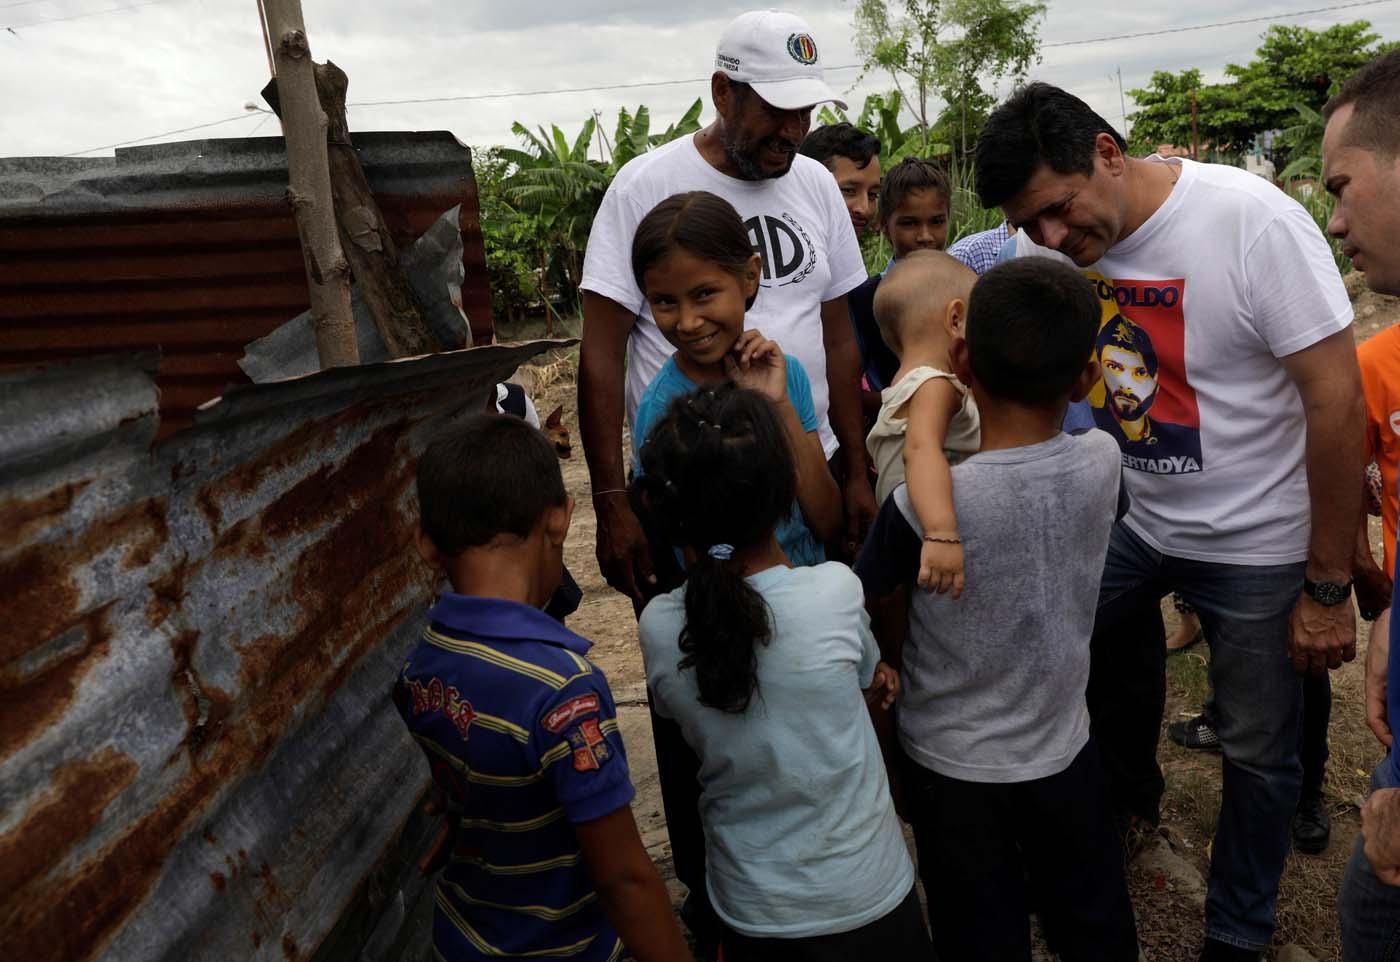 The opposition Democratic Unity coalition candidate for Barinas state Freddy Superlano (C) talks with residents of a slum while campaigning on the outskirts of Barinas, Venezuela, October 3, 2017. Picture taken on October 3, 2017. REUTERS/Ricardo Moraes